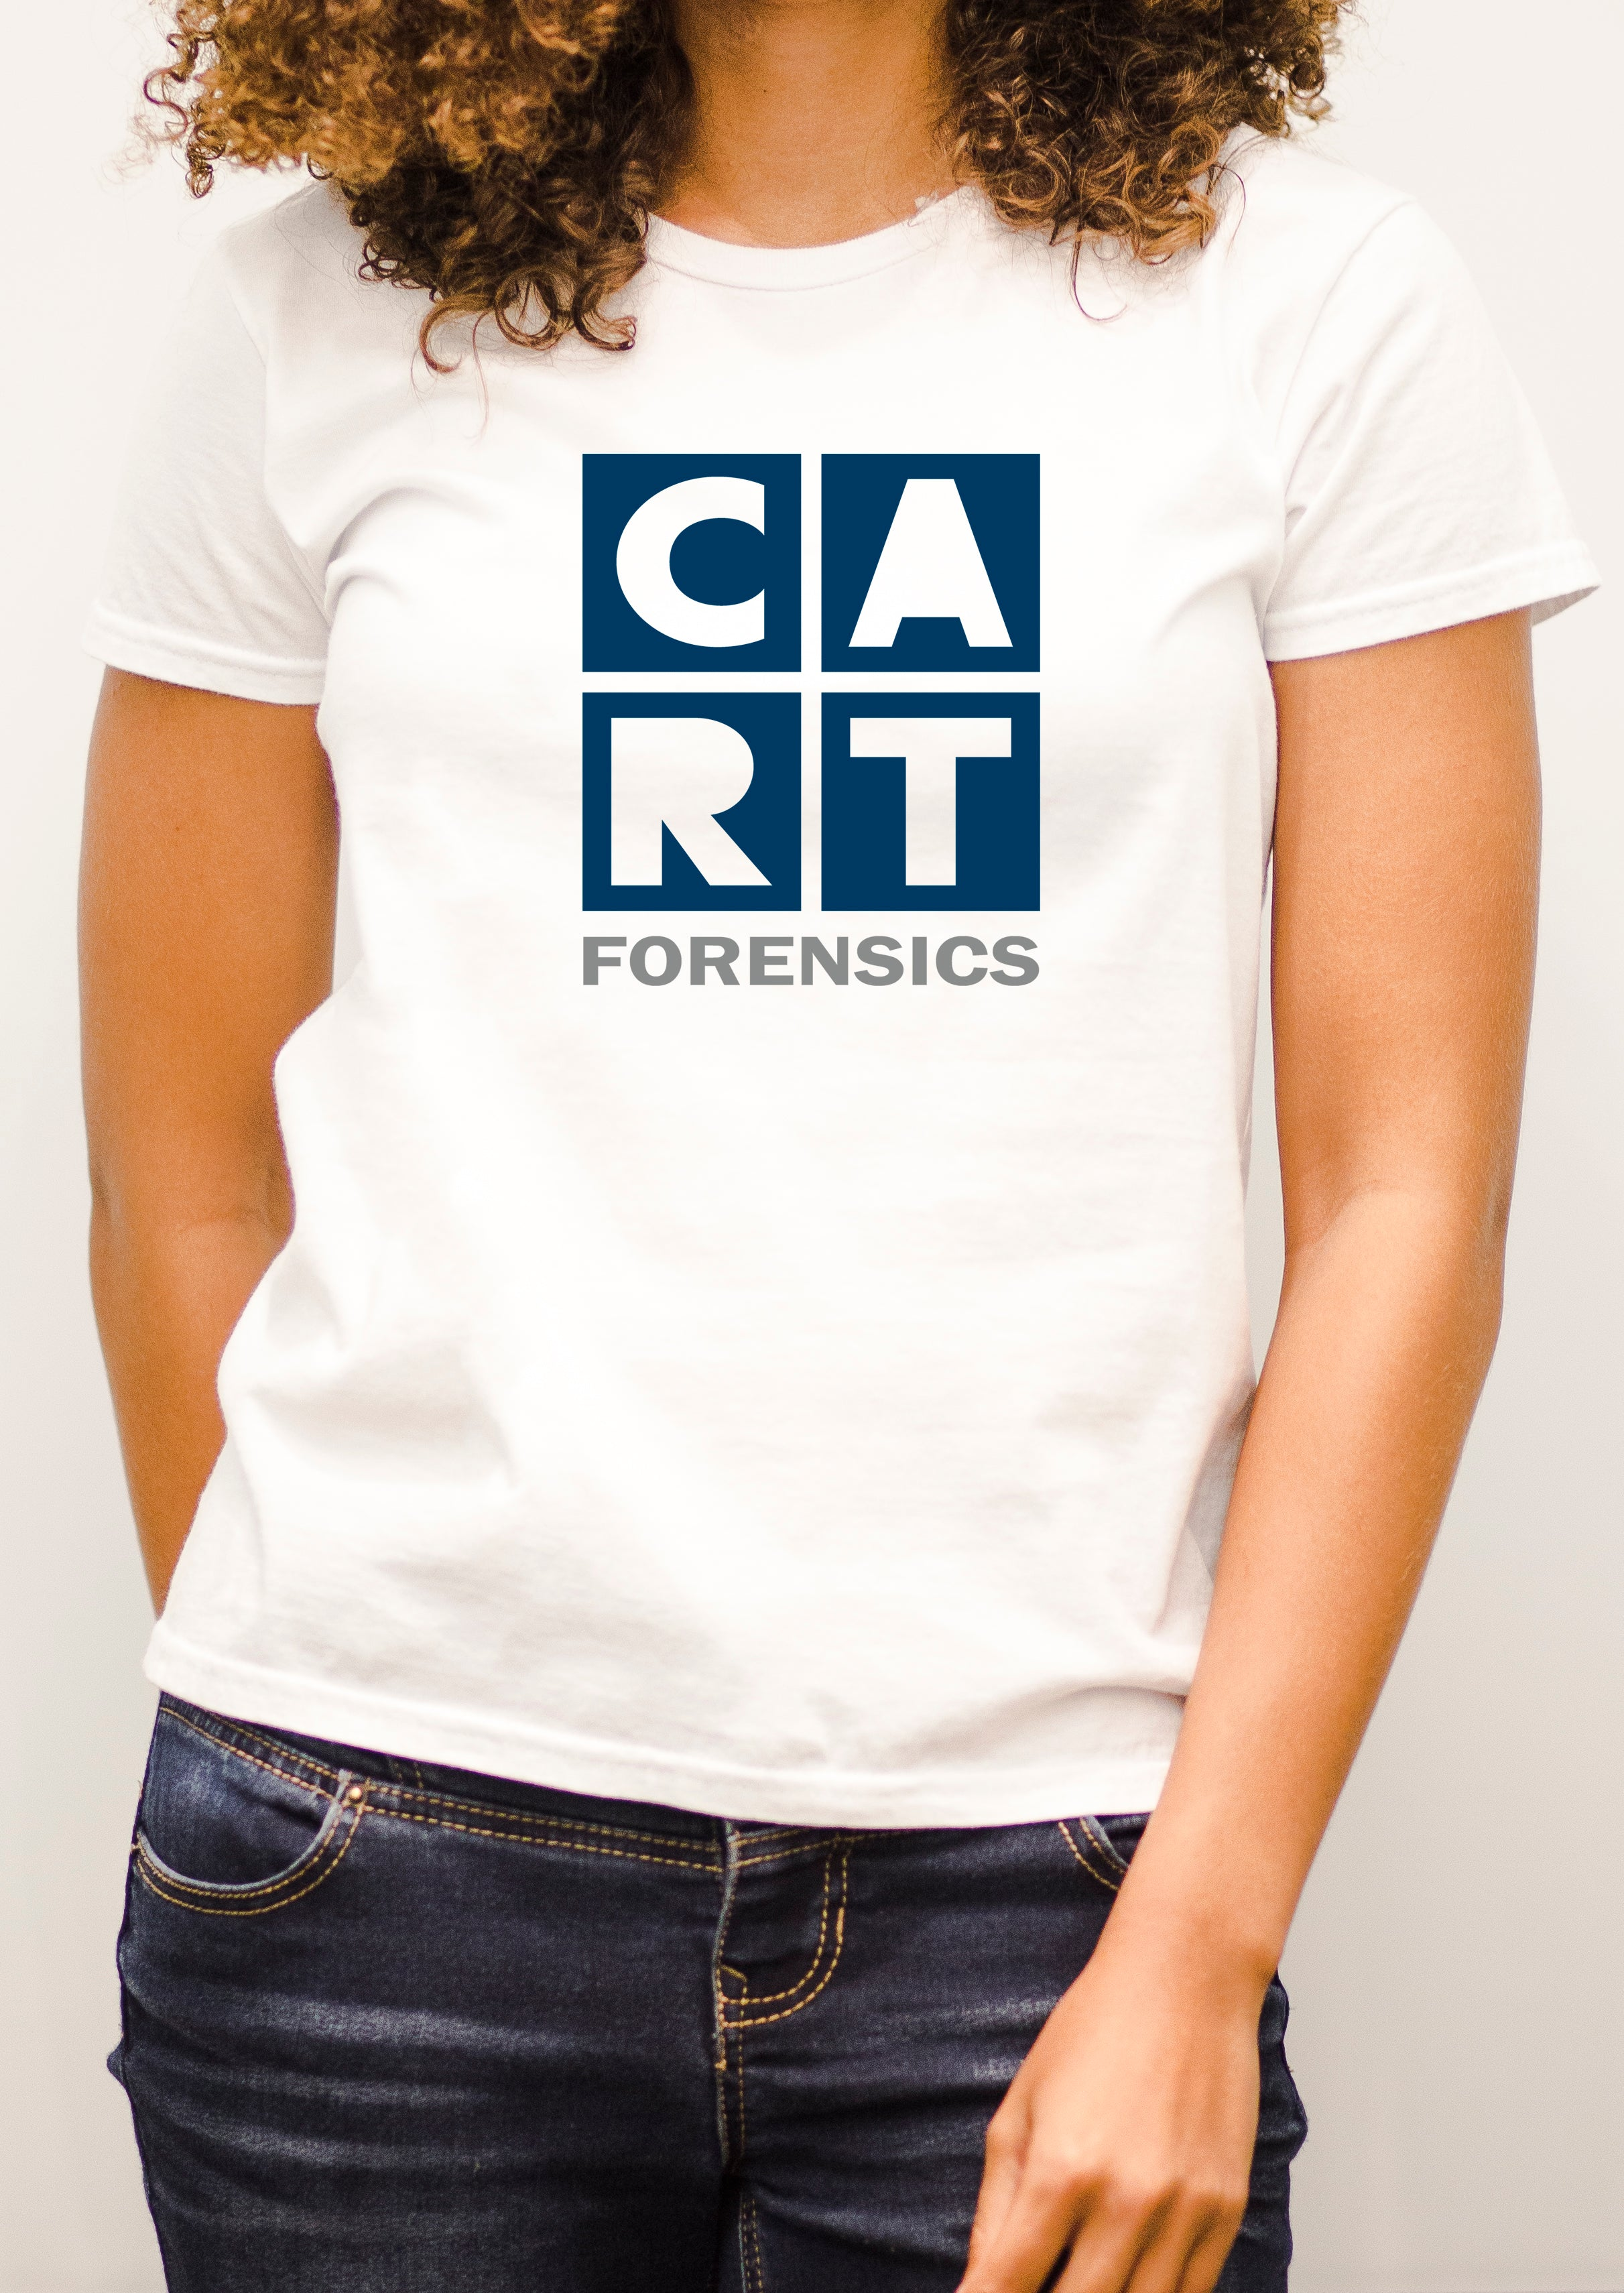 Women's short sleeve t-shirt - forensics blue/grey